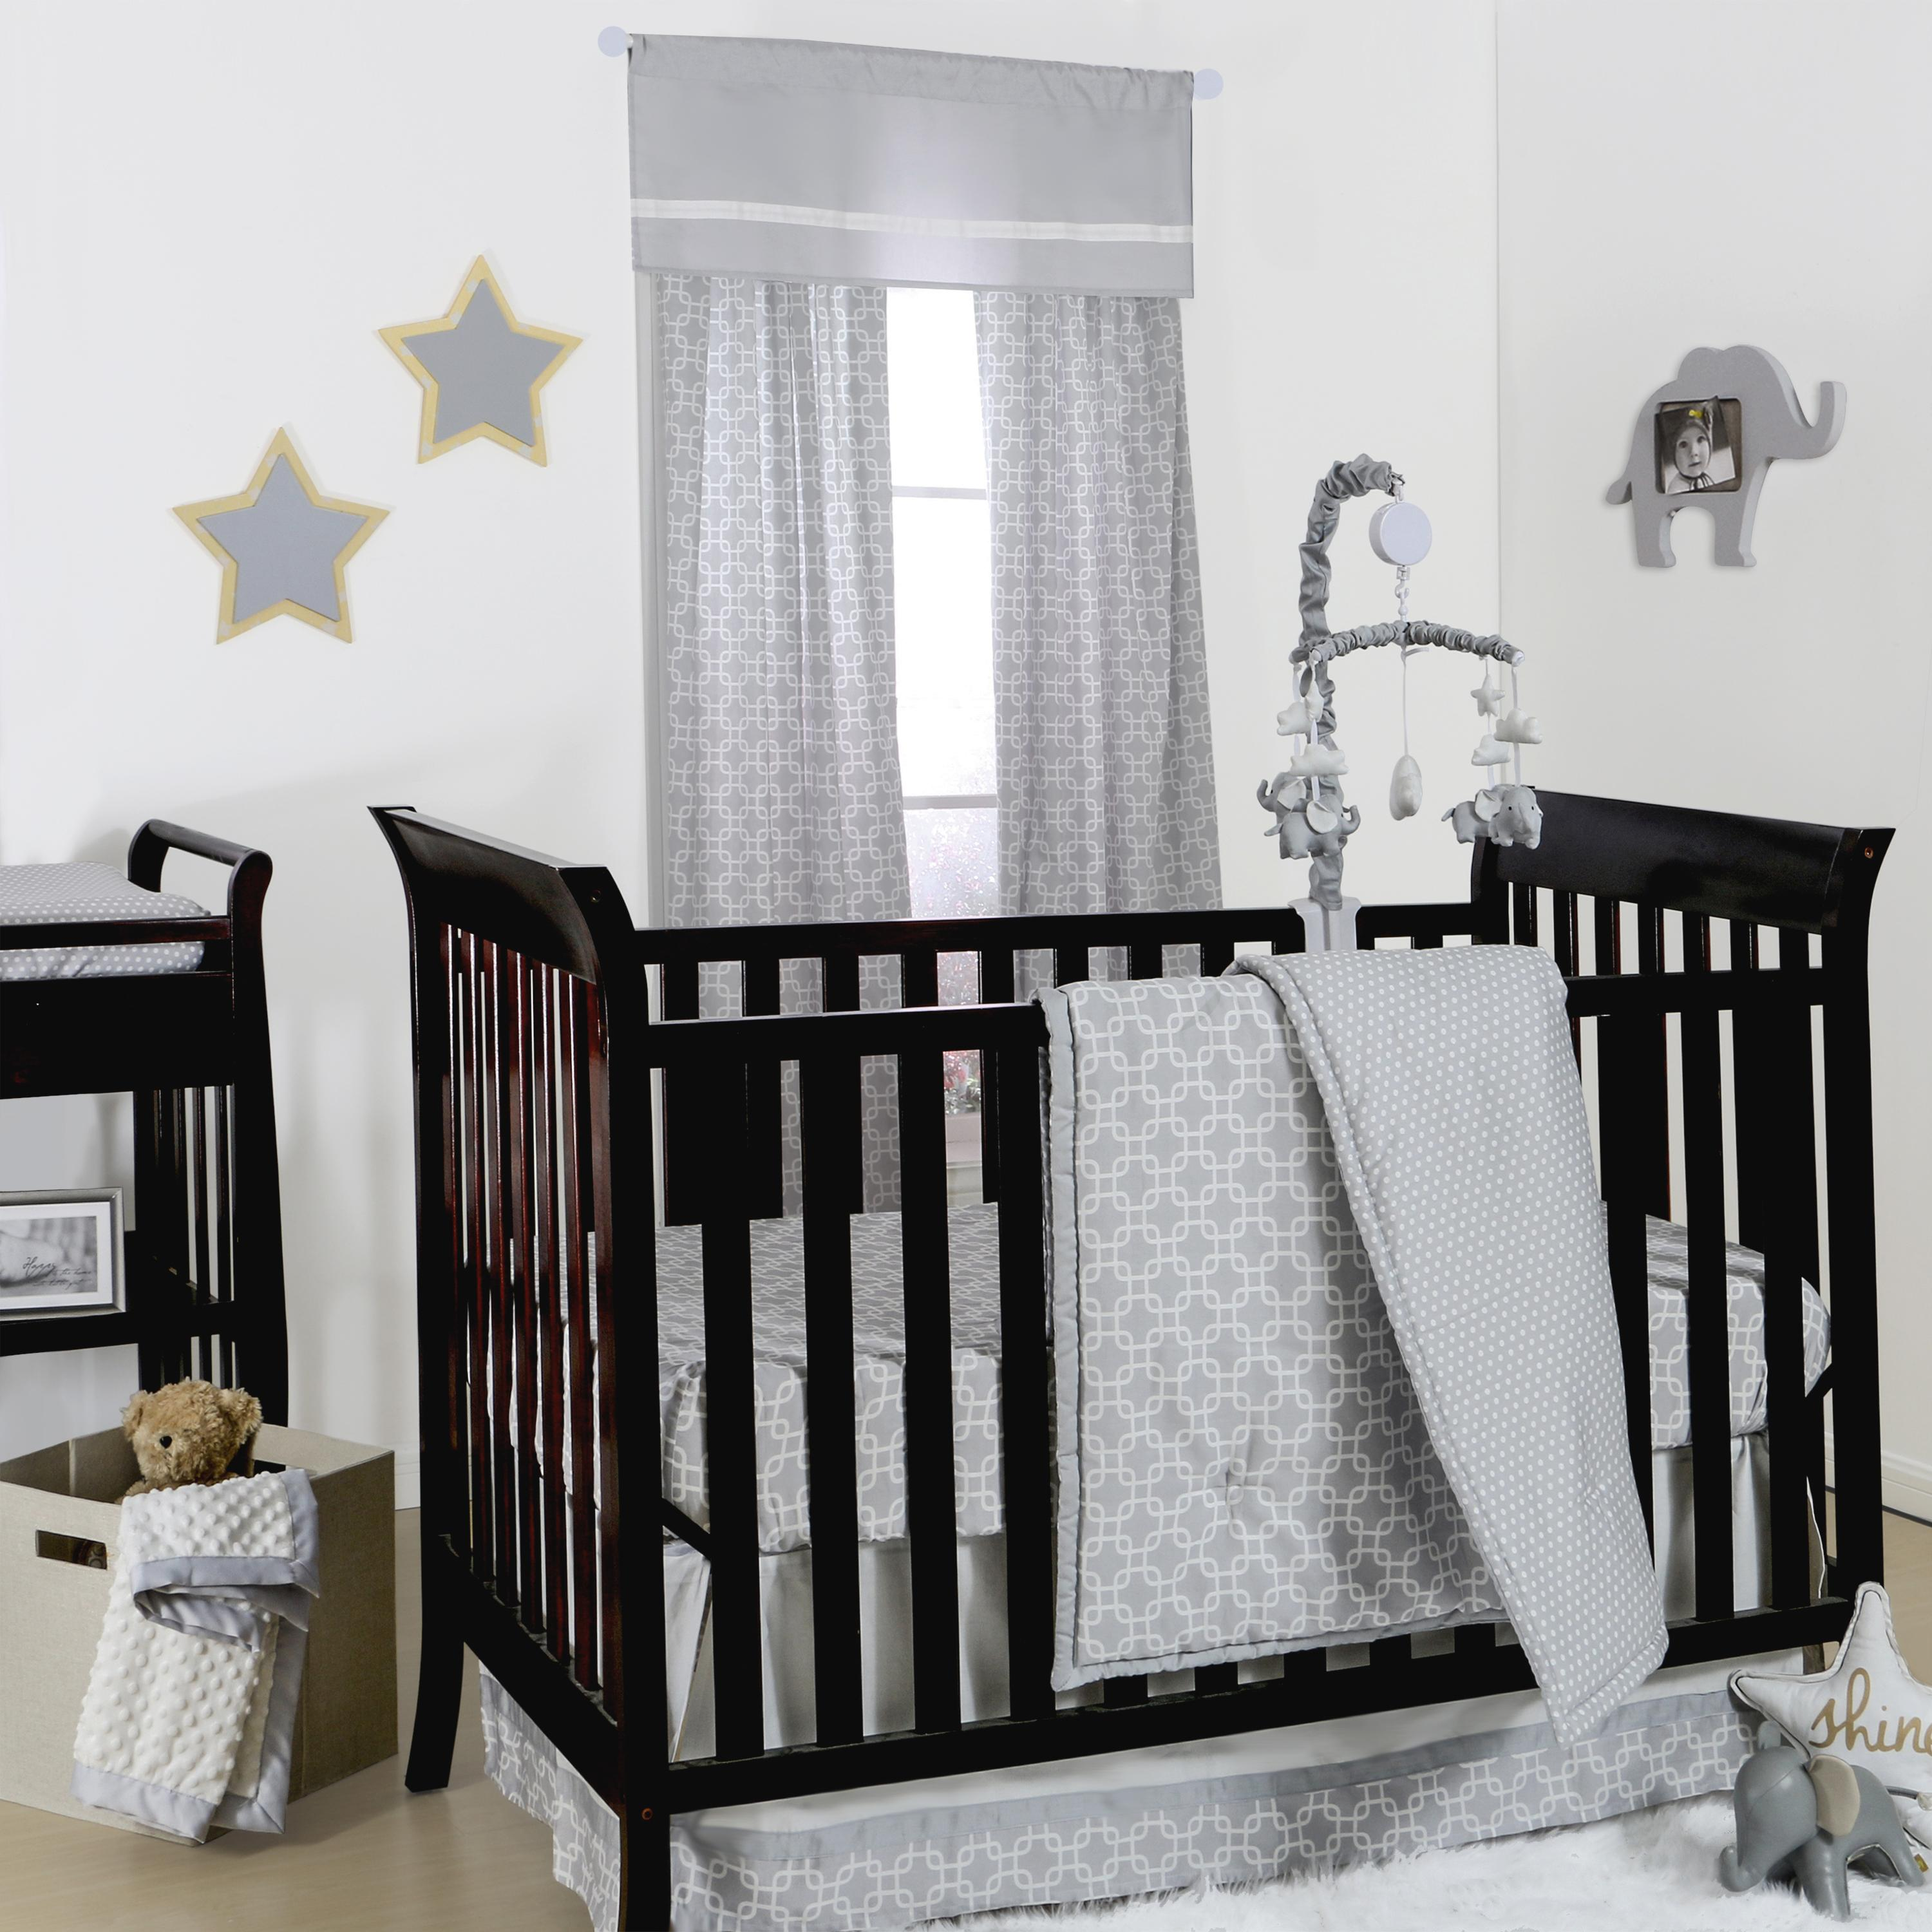 Baby Bedding Sets Sheets Blankets More